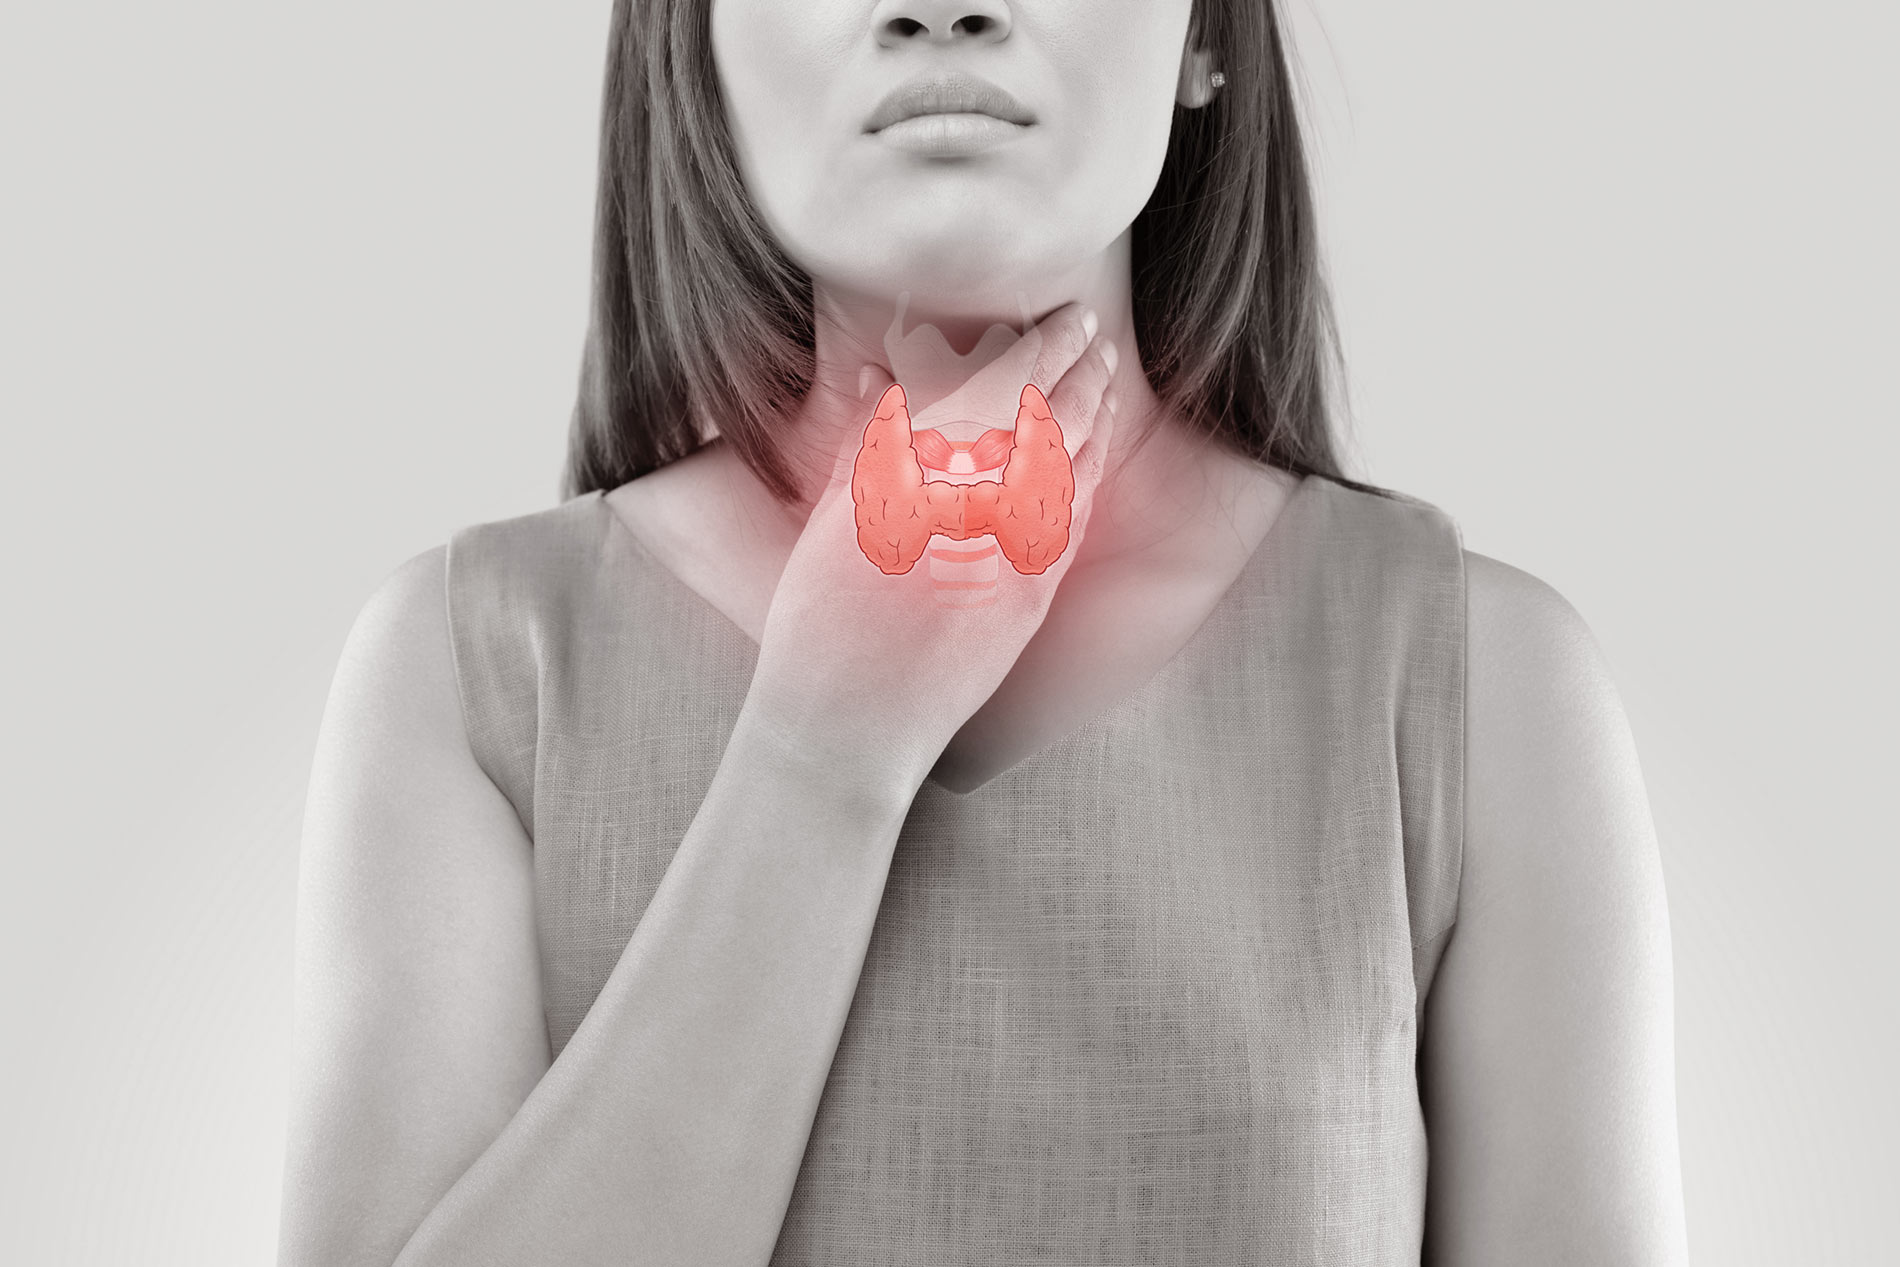 Do I Need To Have My Thyroid Checked?